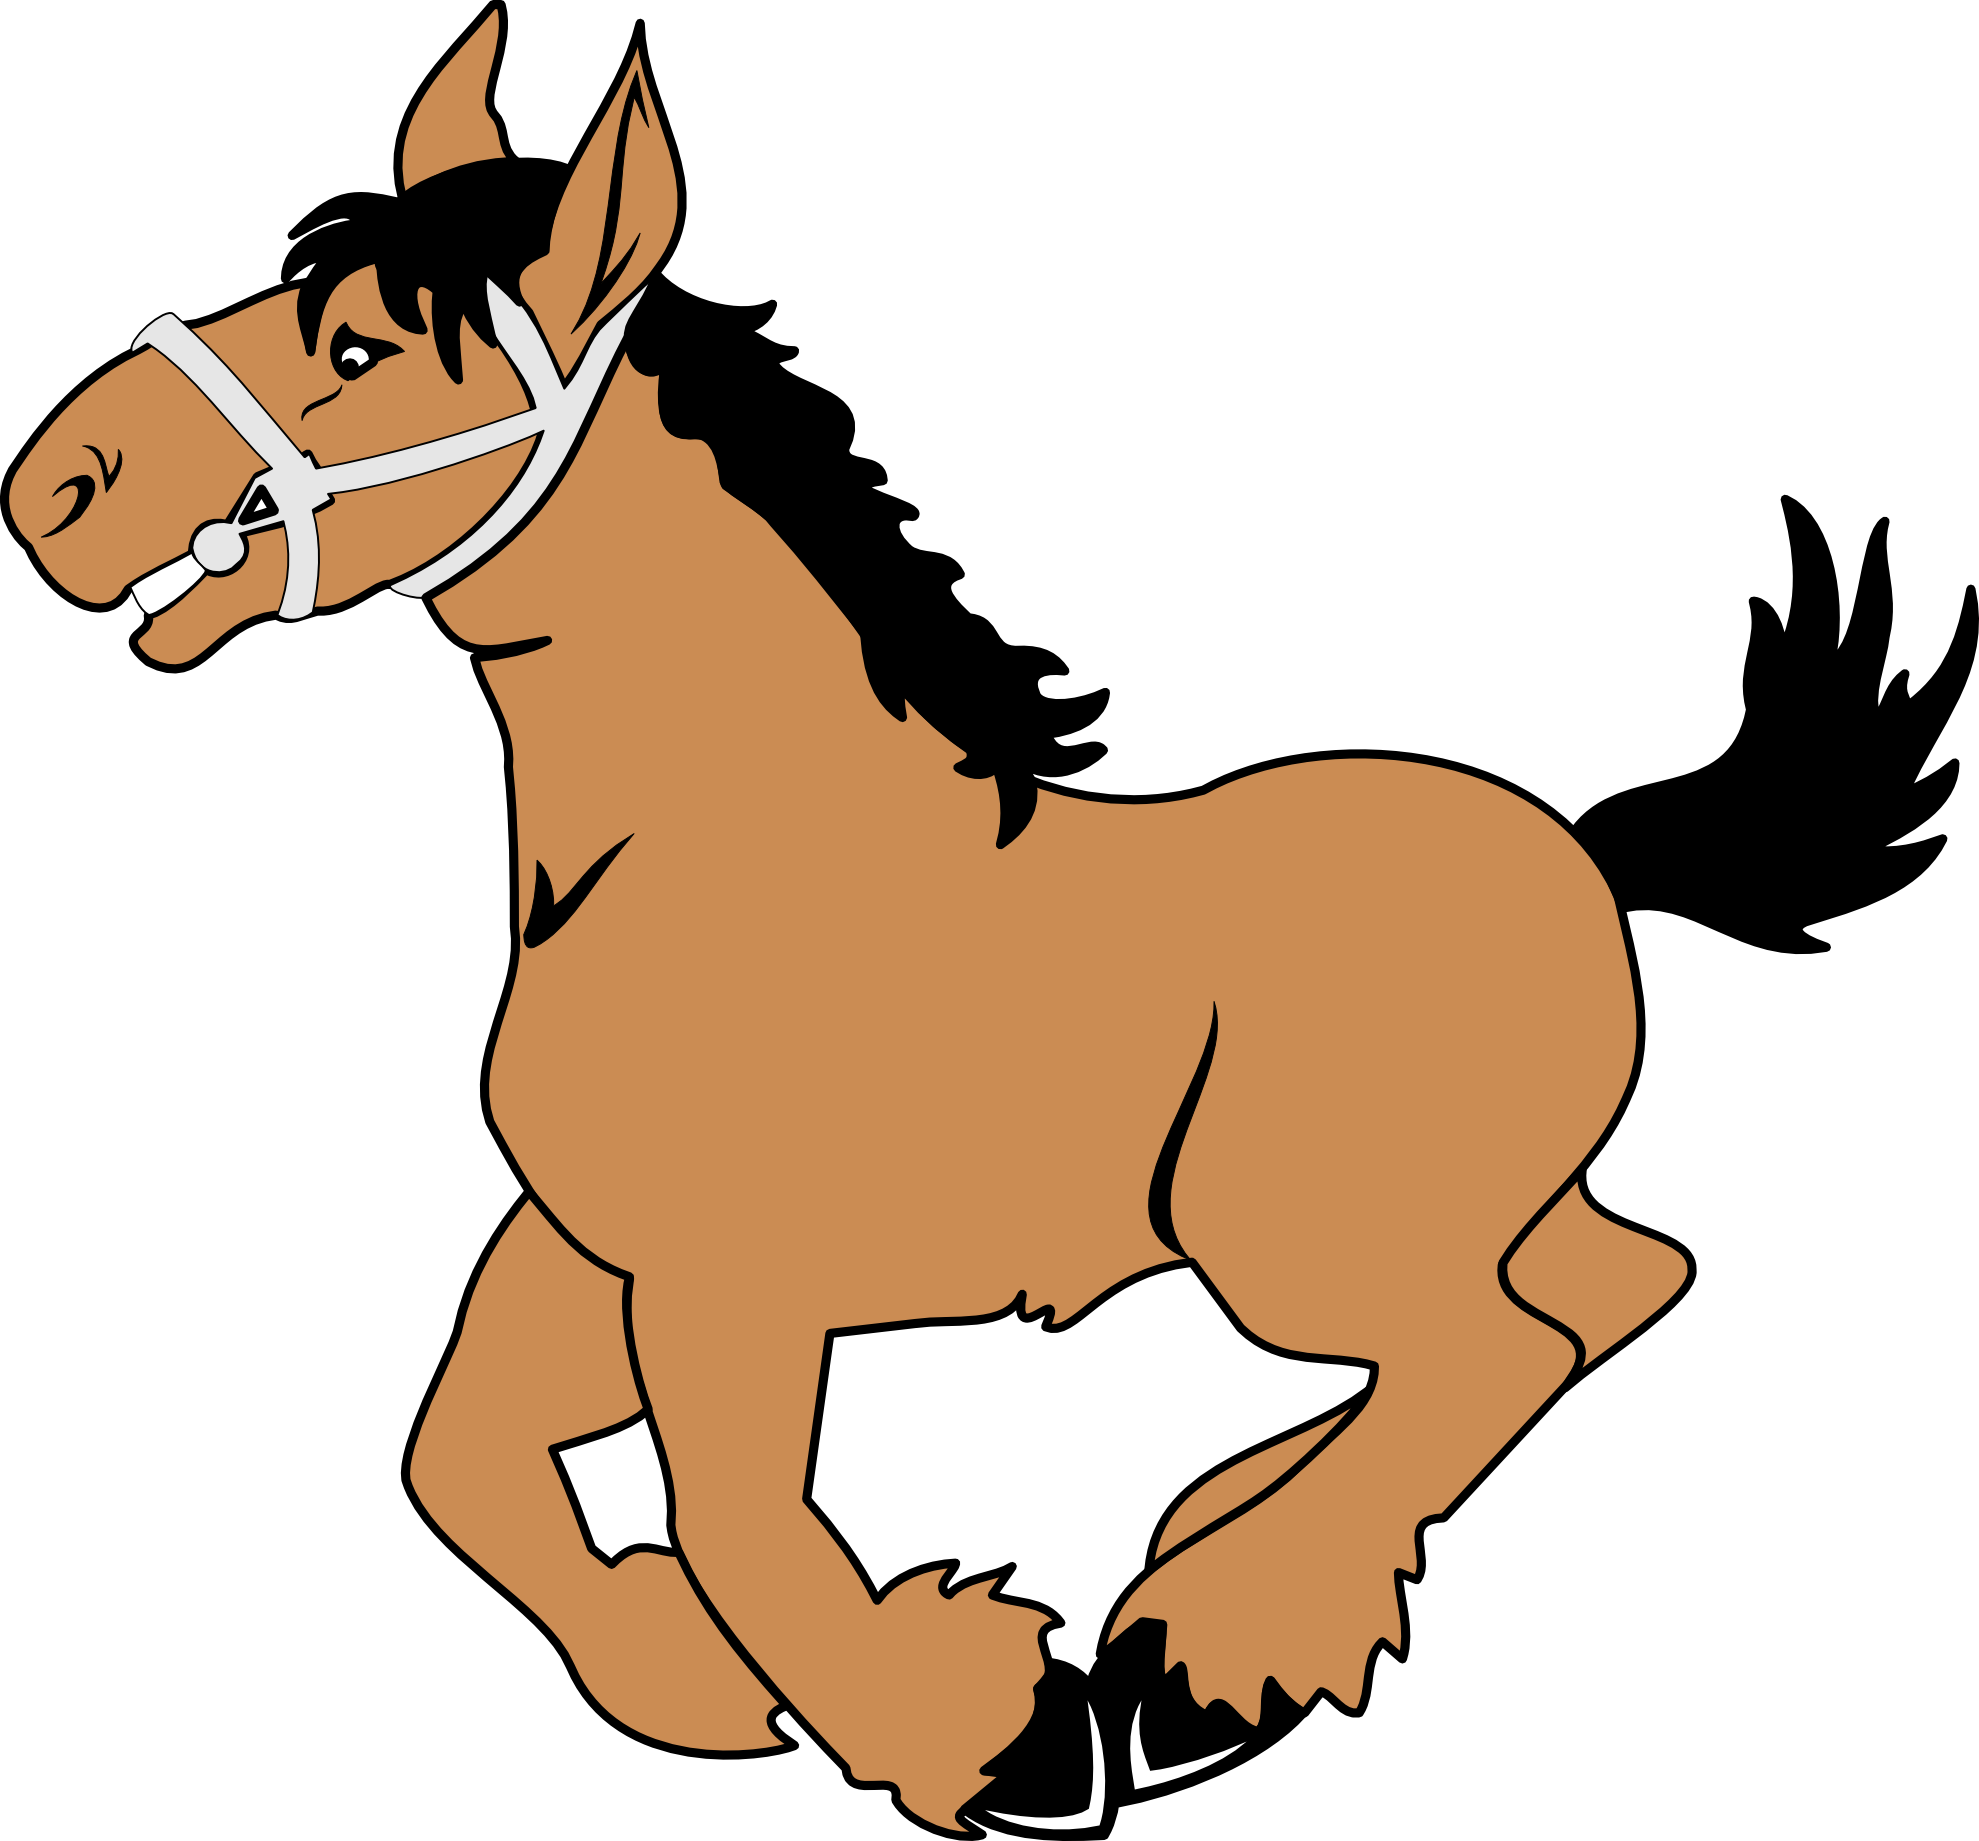 Clip Art Horse - Clipart library